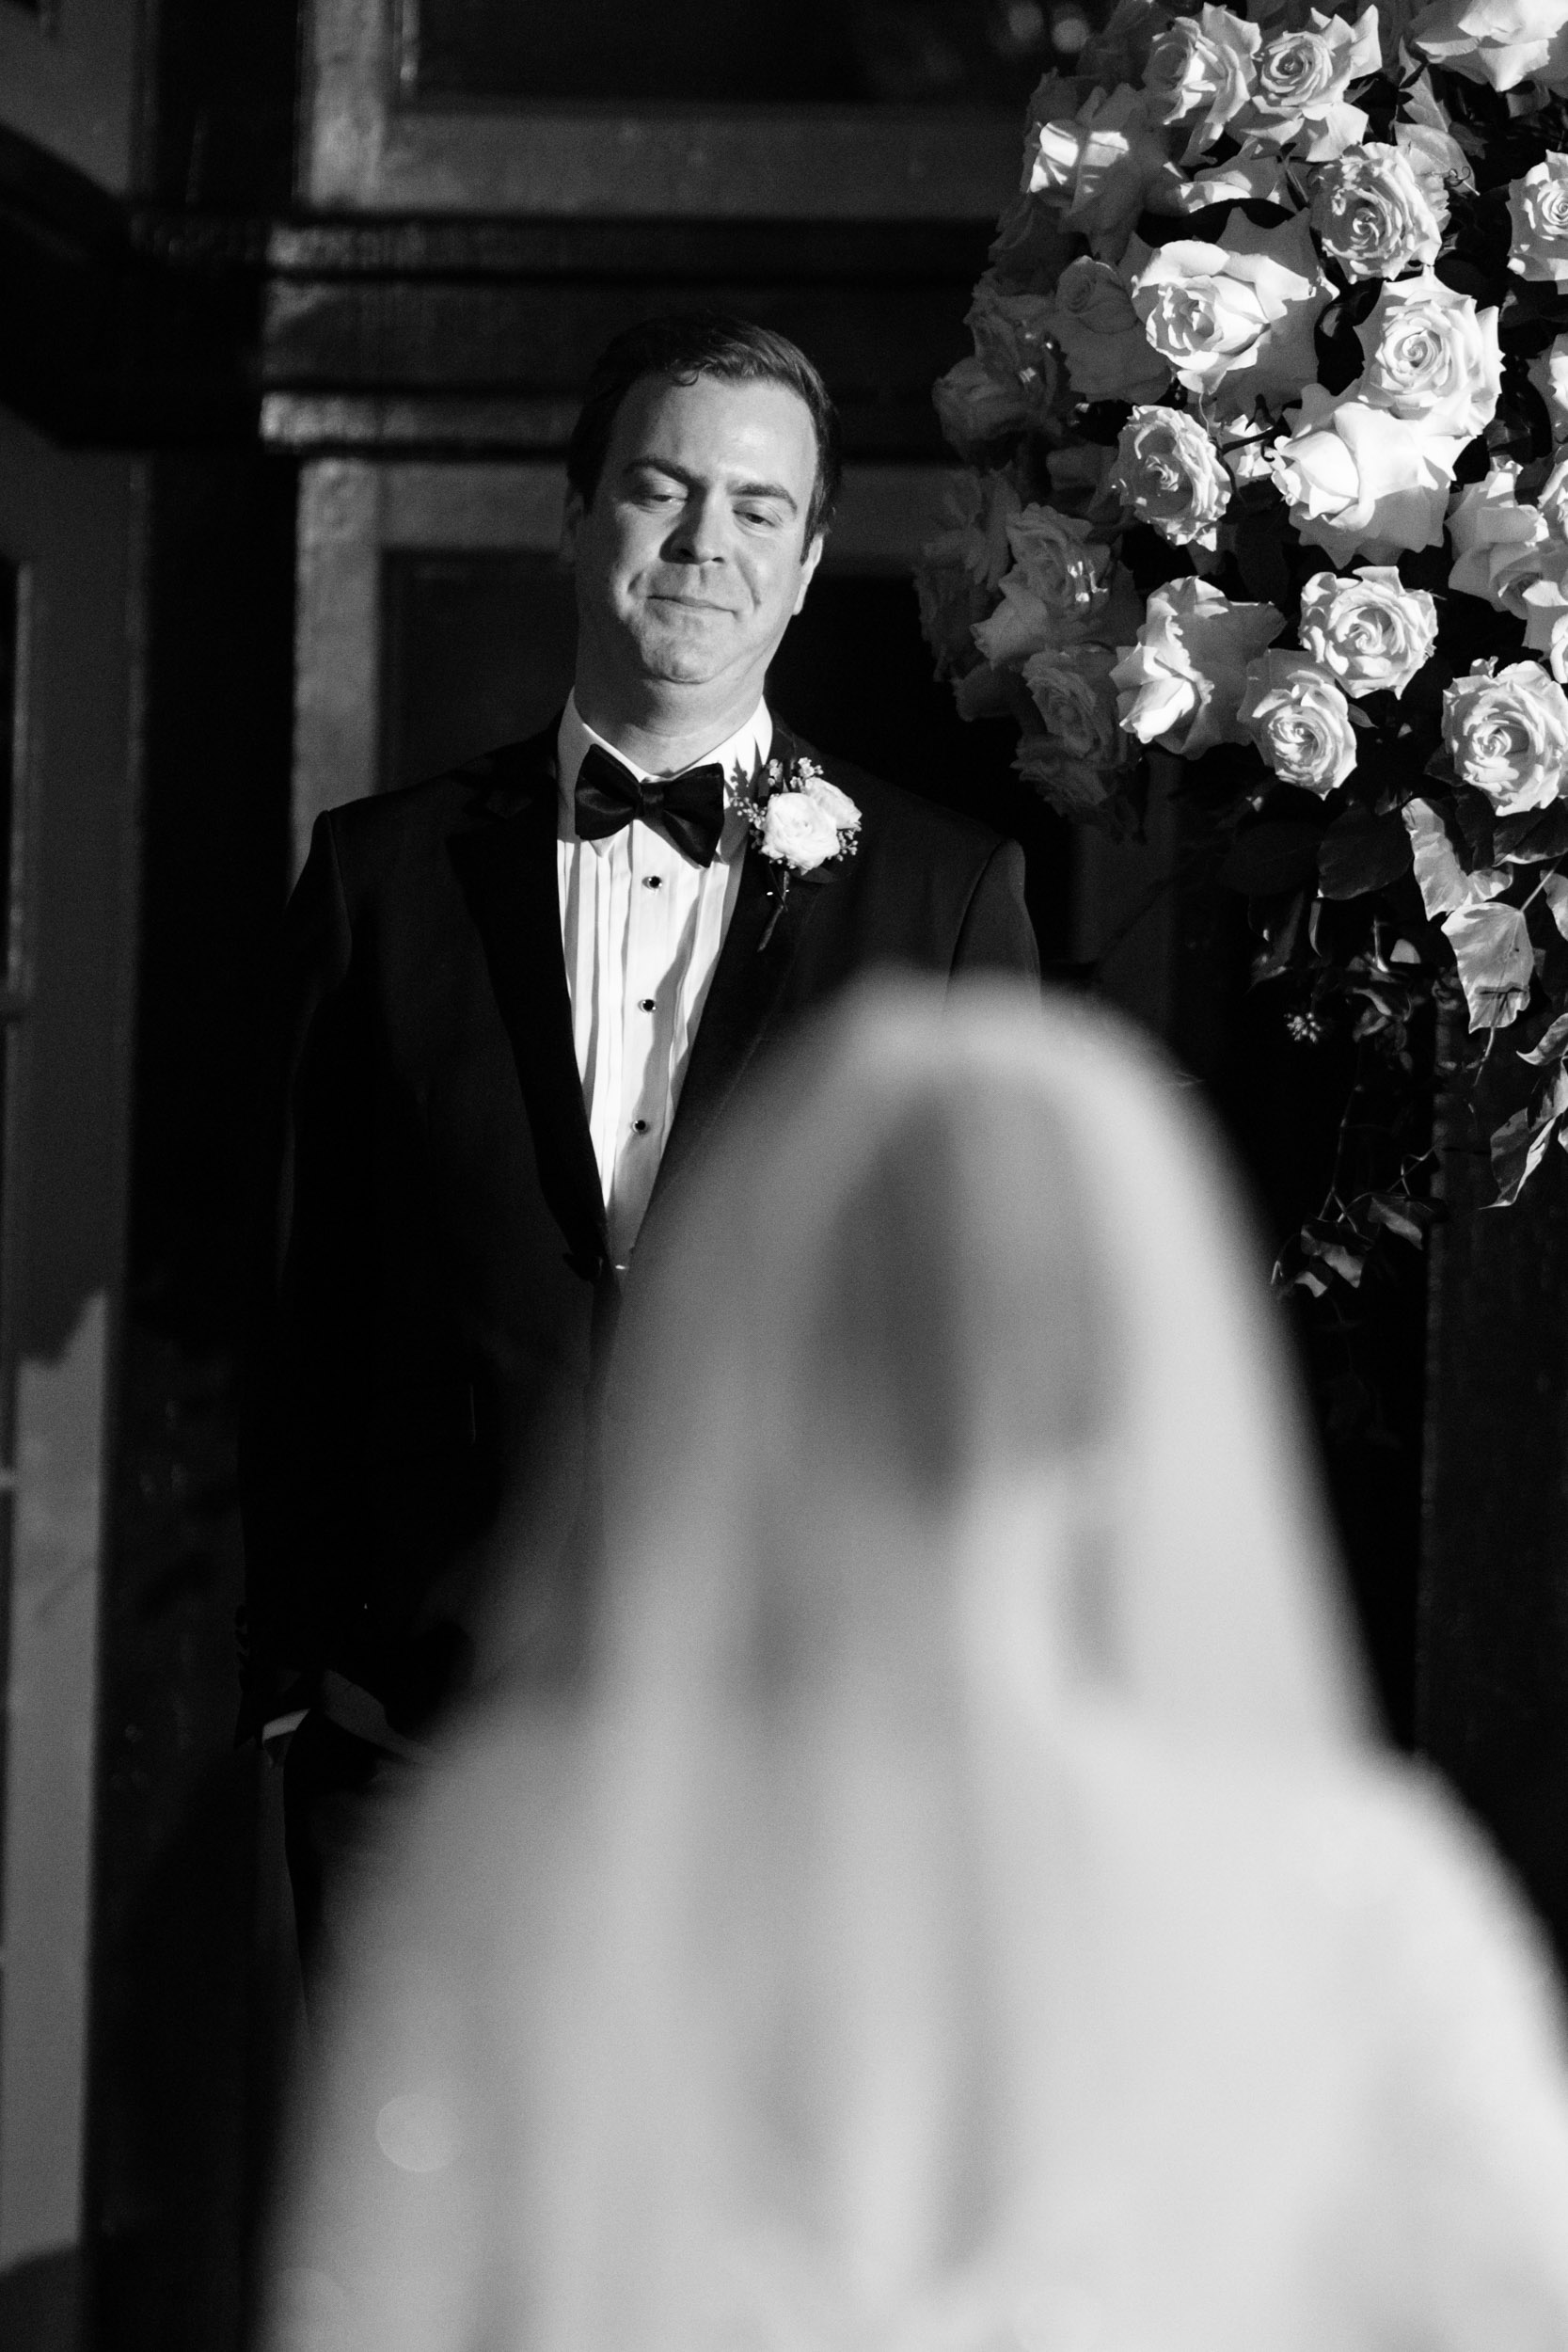 Groom sees bride for first time on wedding day as she walks down the aisle at Chicago Athletic Association wedding ceremony.